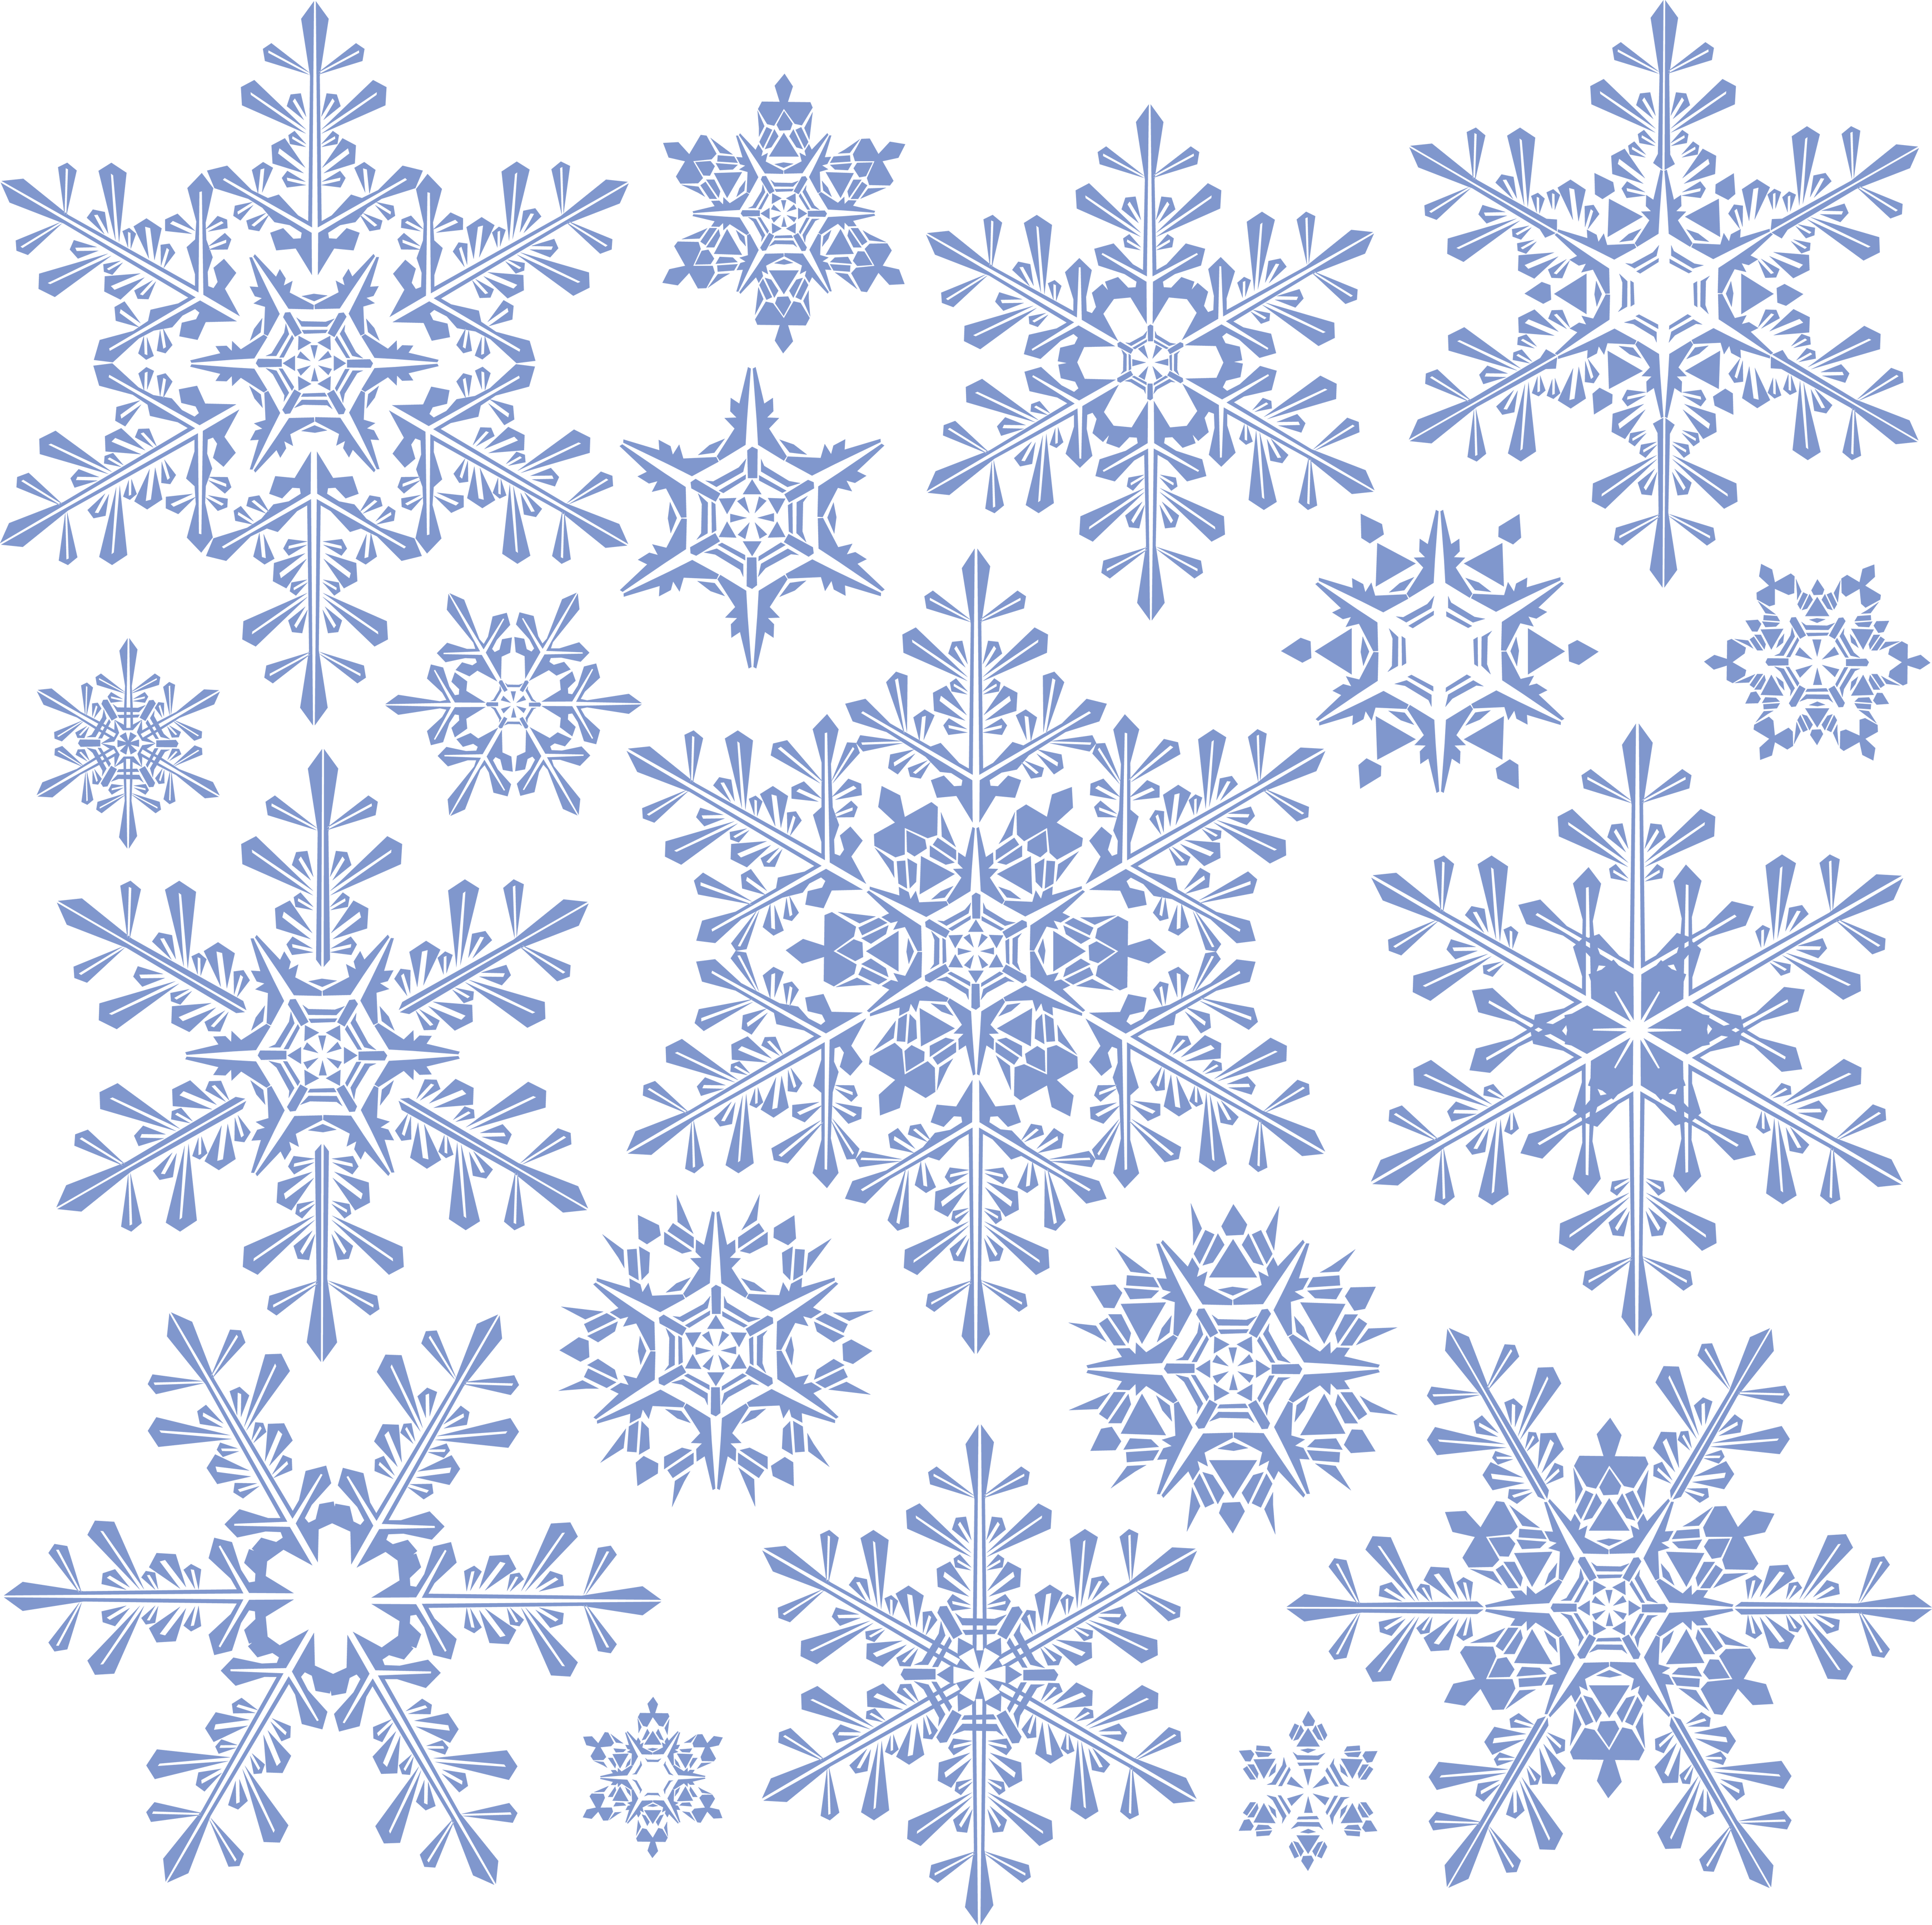 Abstract snowflake clipart jpg freeuse stock Snowflakes PNG image | Silhouette | Pinterest | Scrap, Silhouettes ... jpg freeuse stock